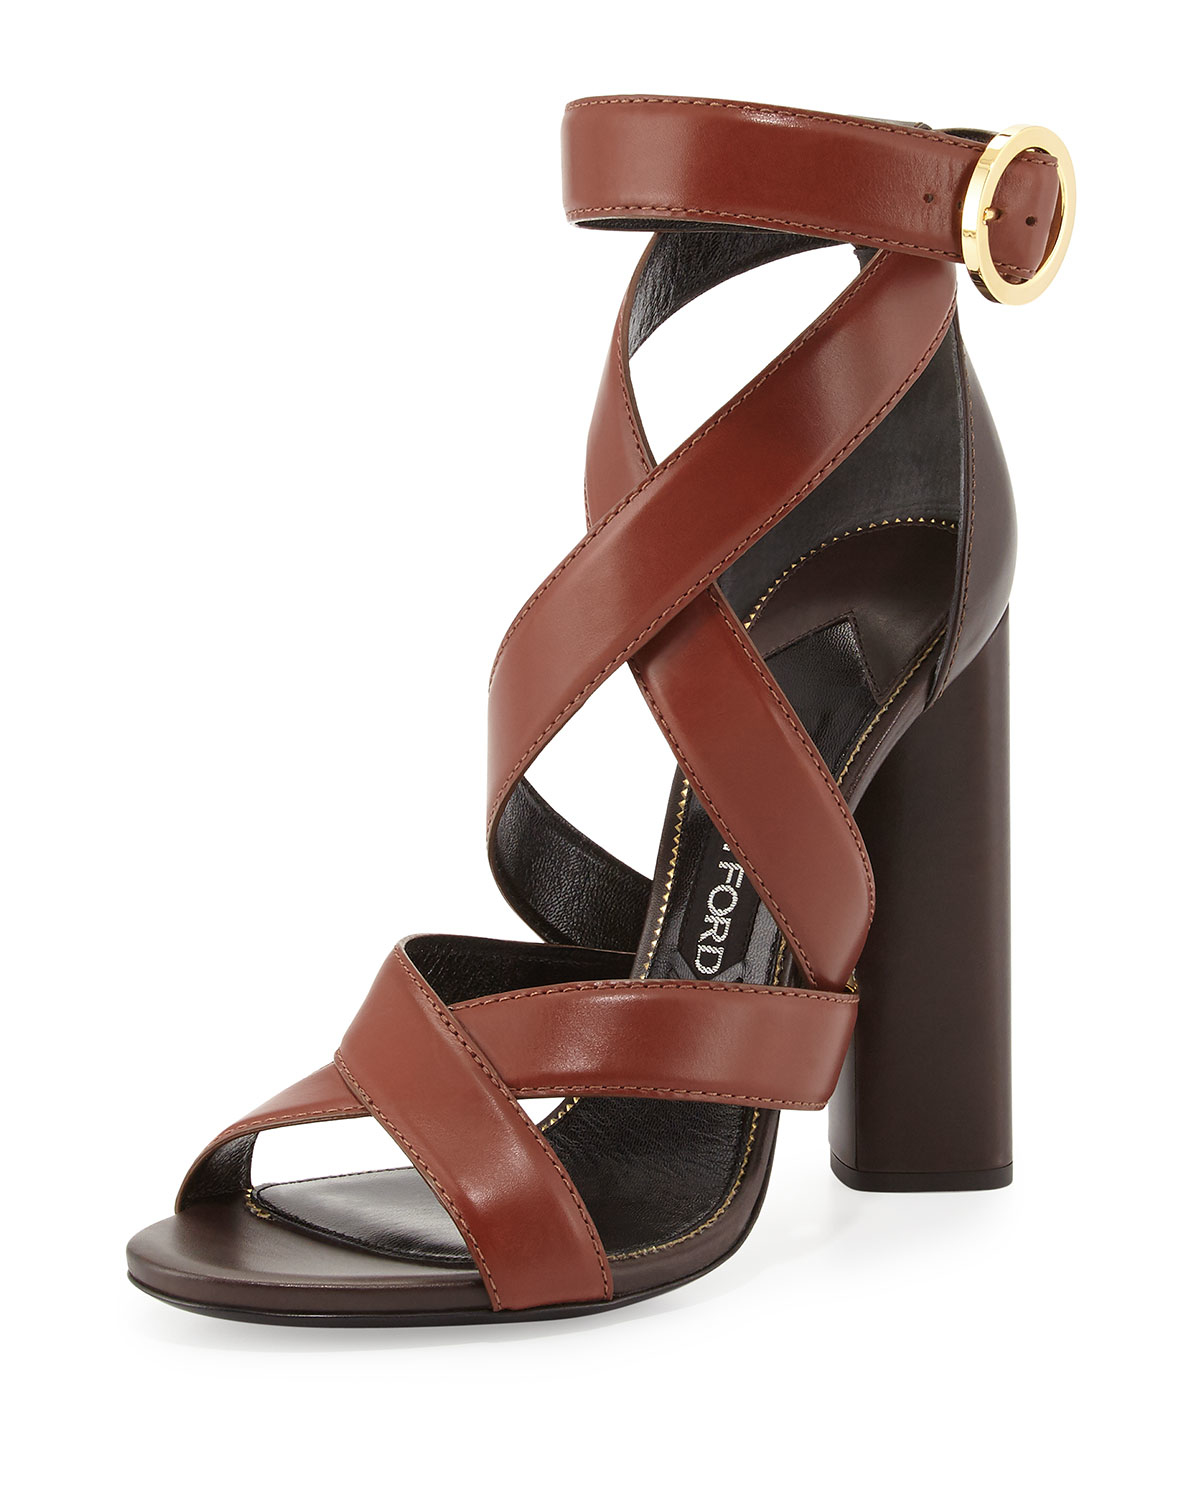 d8165de6ea58f8 Lyst - Tom Ford Two-tone Ankle-wrap Sandal in Brown